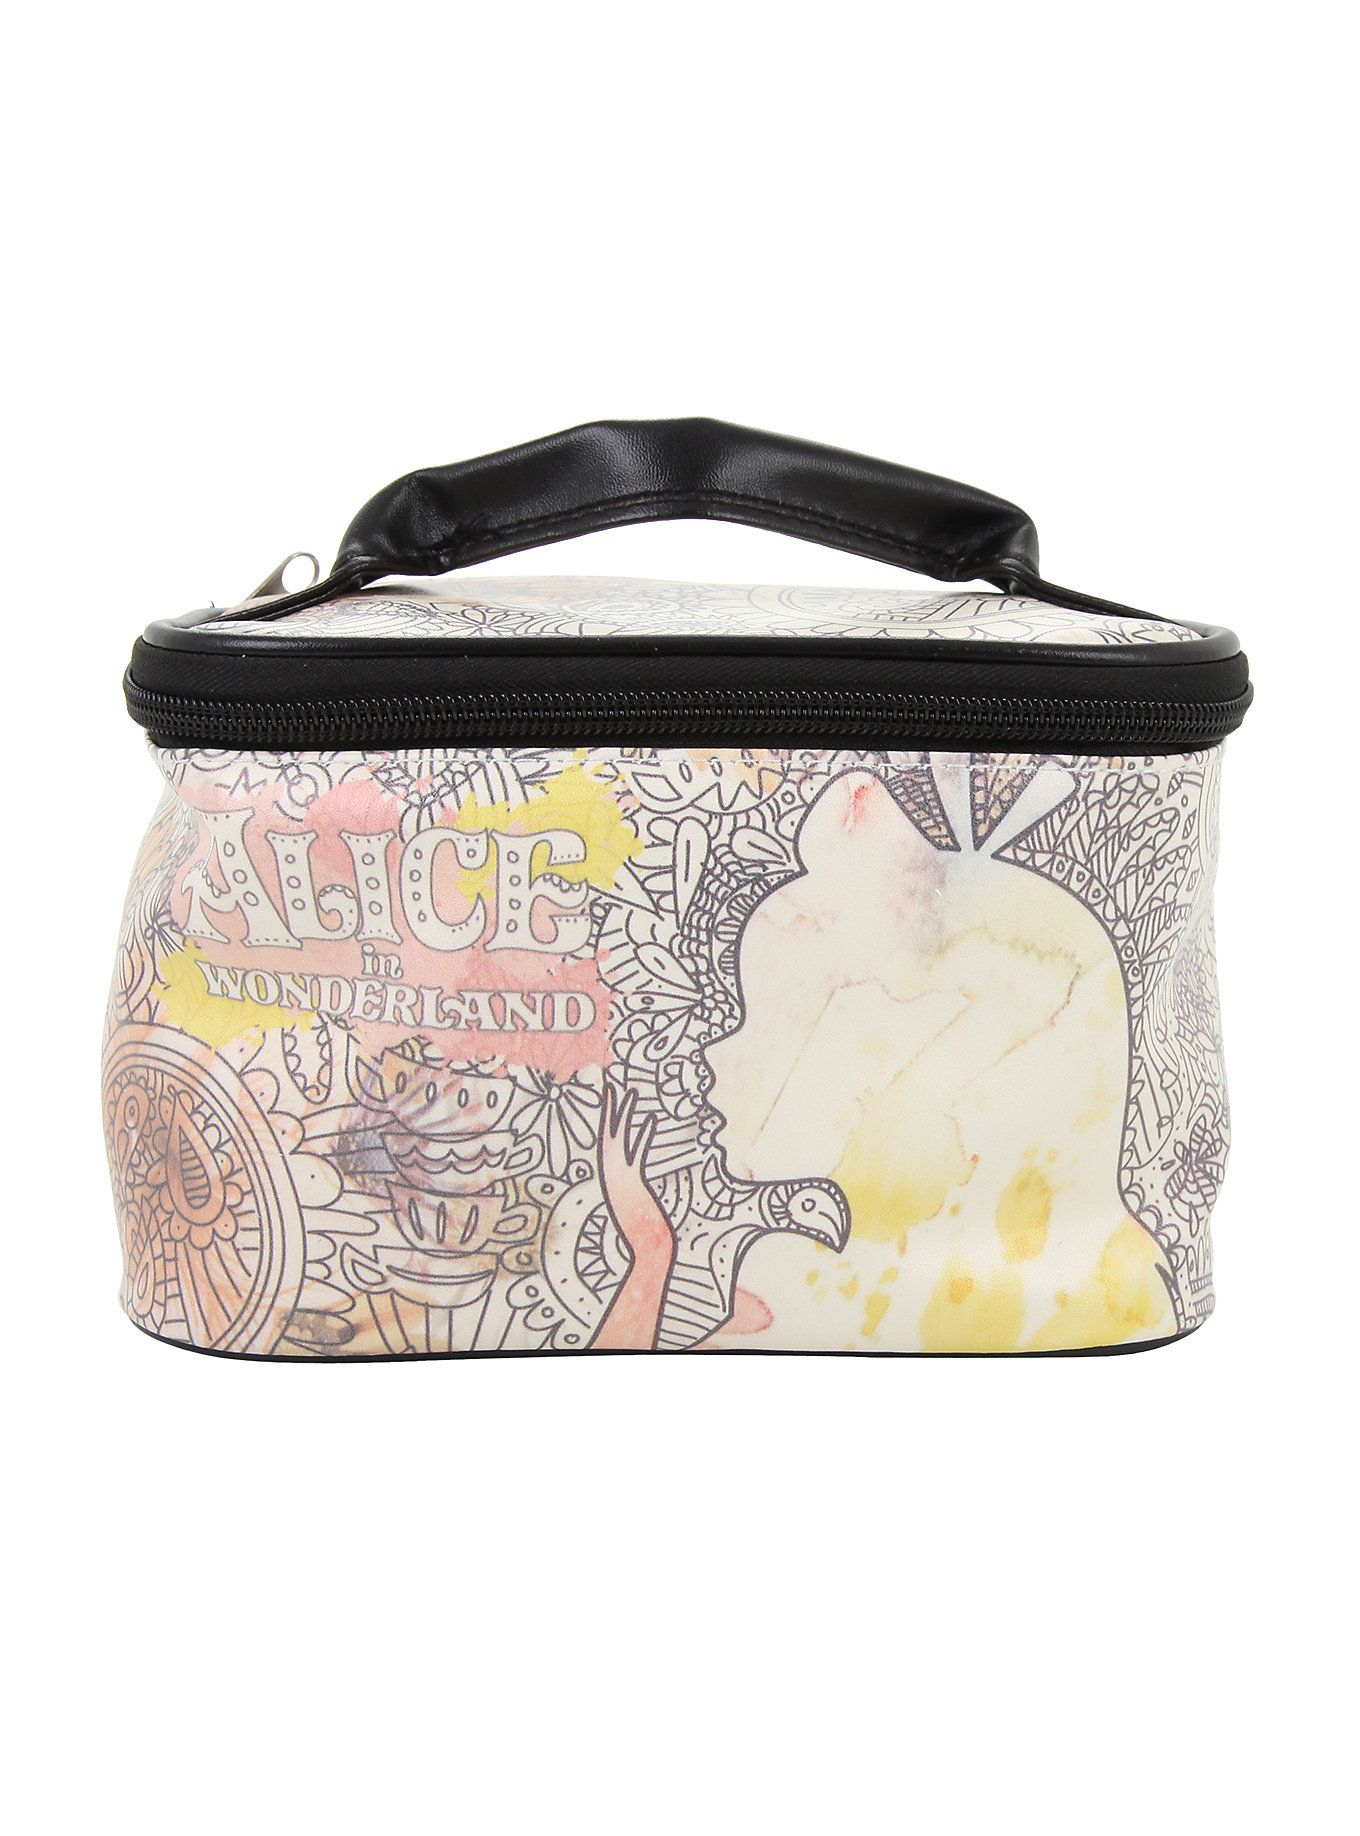 8dcf25308e49 http   www.hottopic.com product alice-in-wonderland-train-case-cosmetic- travel-tote 10472511.html